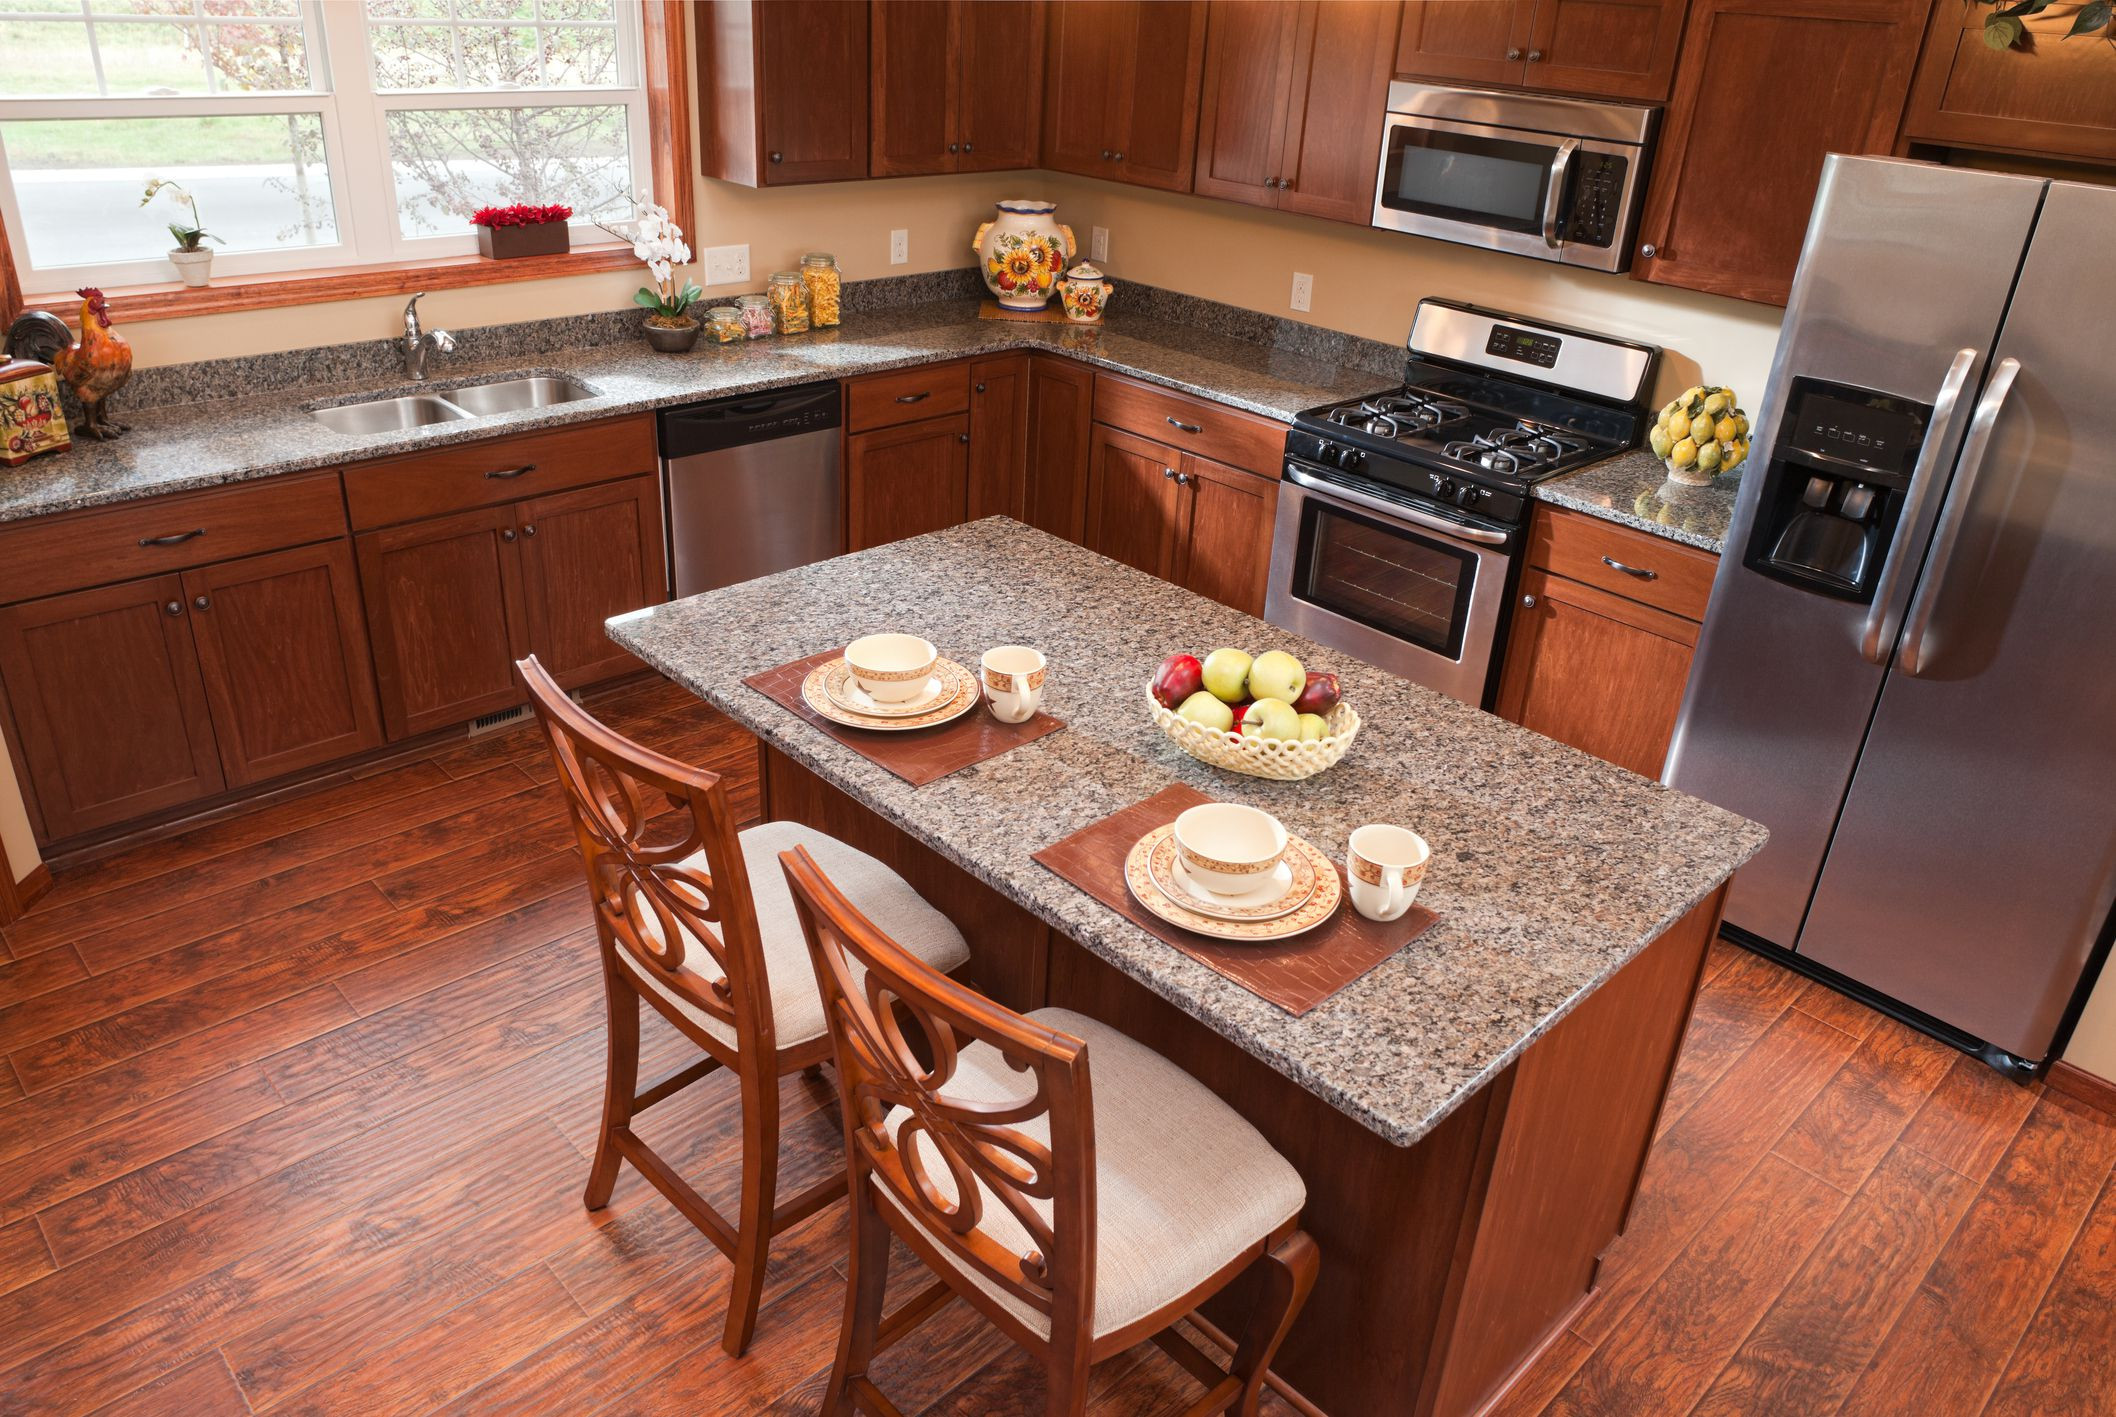 glue down hardwood floor problems of can you install laminate flooring in the kitchen in kitchen laminate floor gettyimages 155098316 5895140c5f9b5874ee5f7711